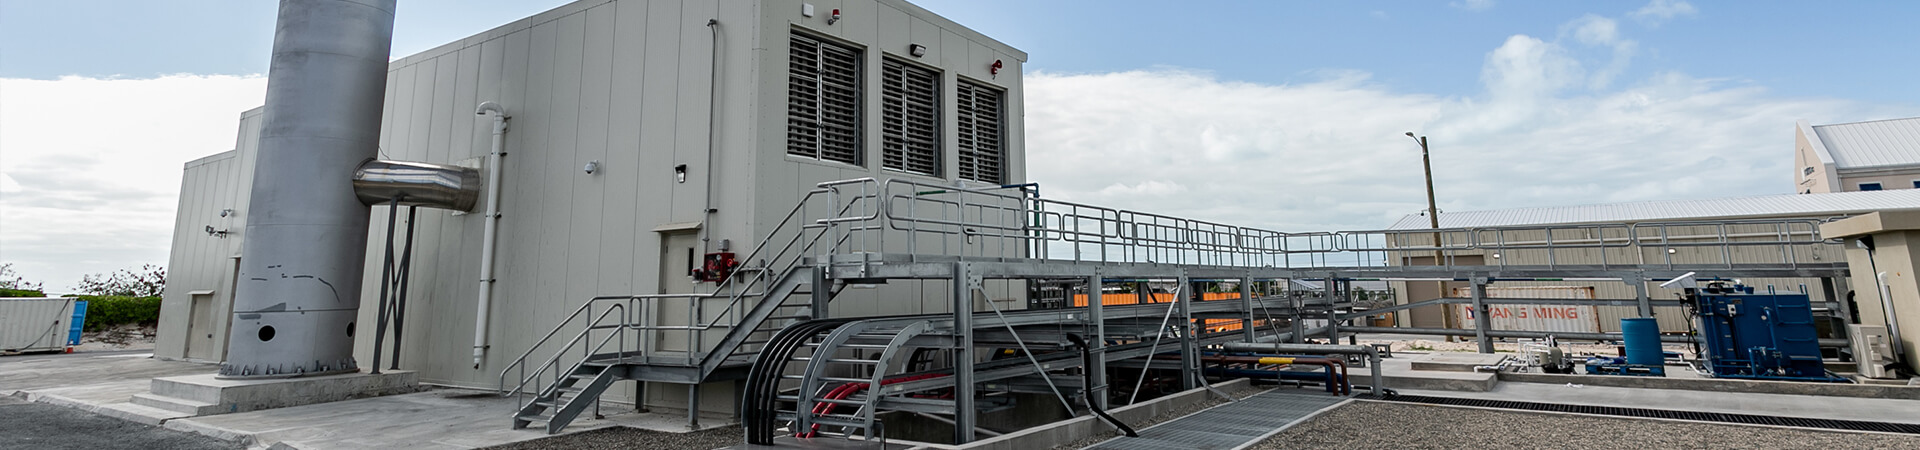 Fortis power supply company in TCI